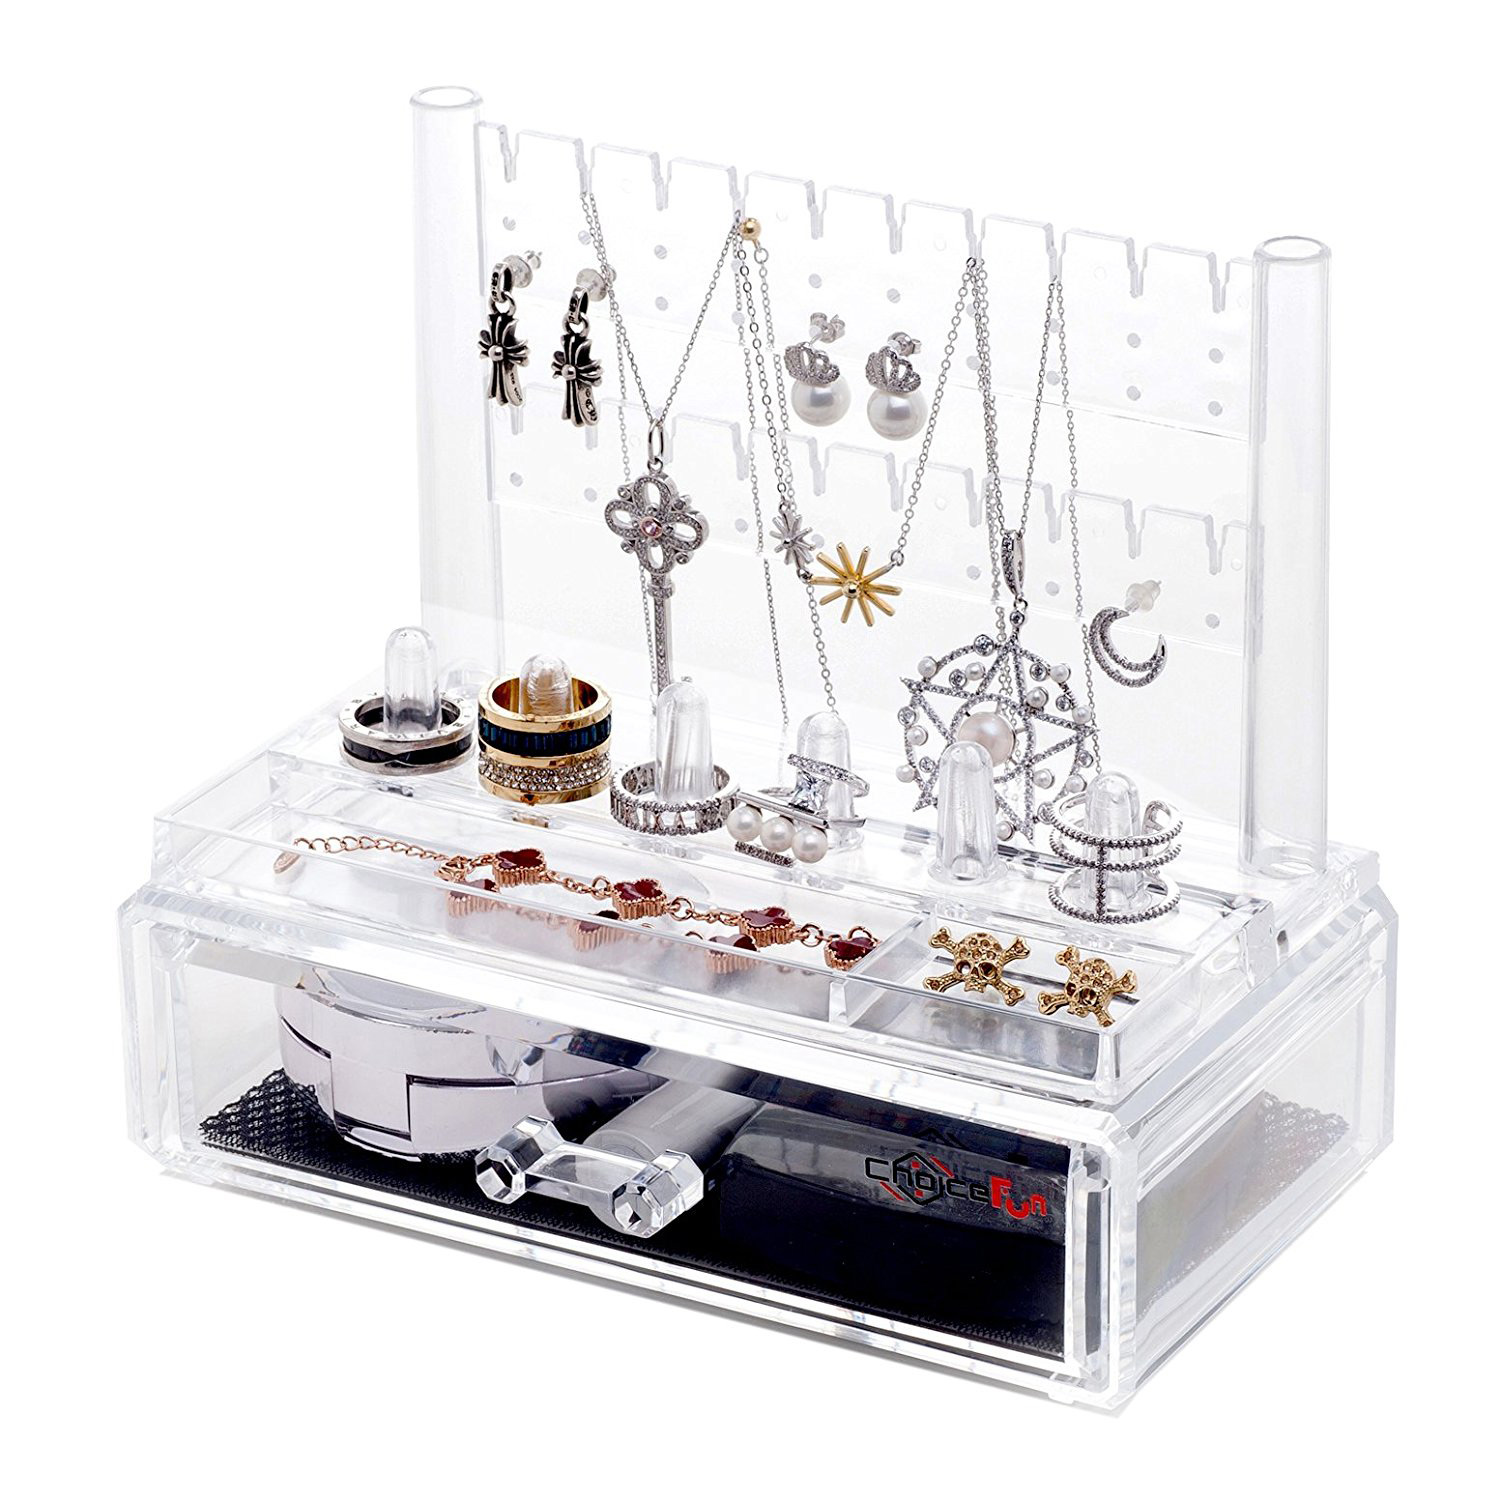 Multifunctional Acrylic Jewelry Display Platform